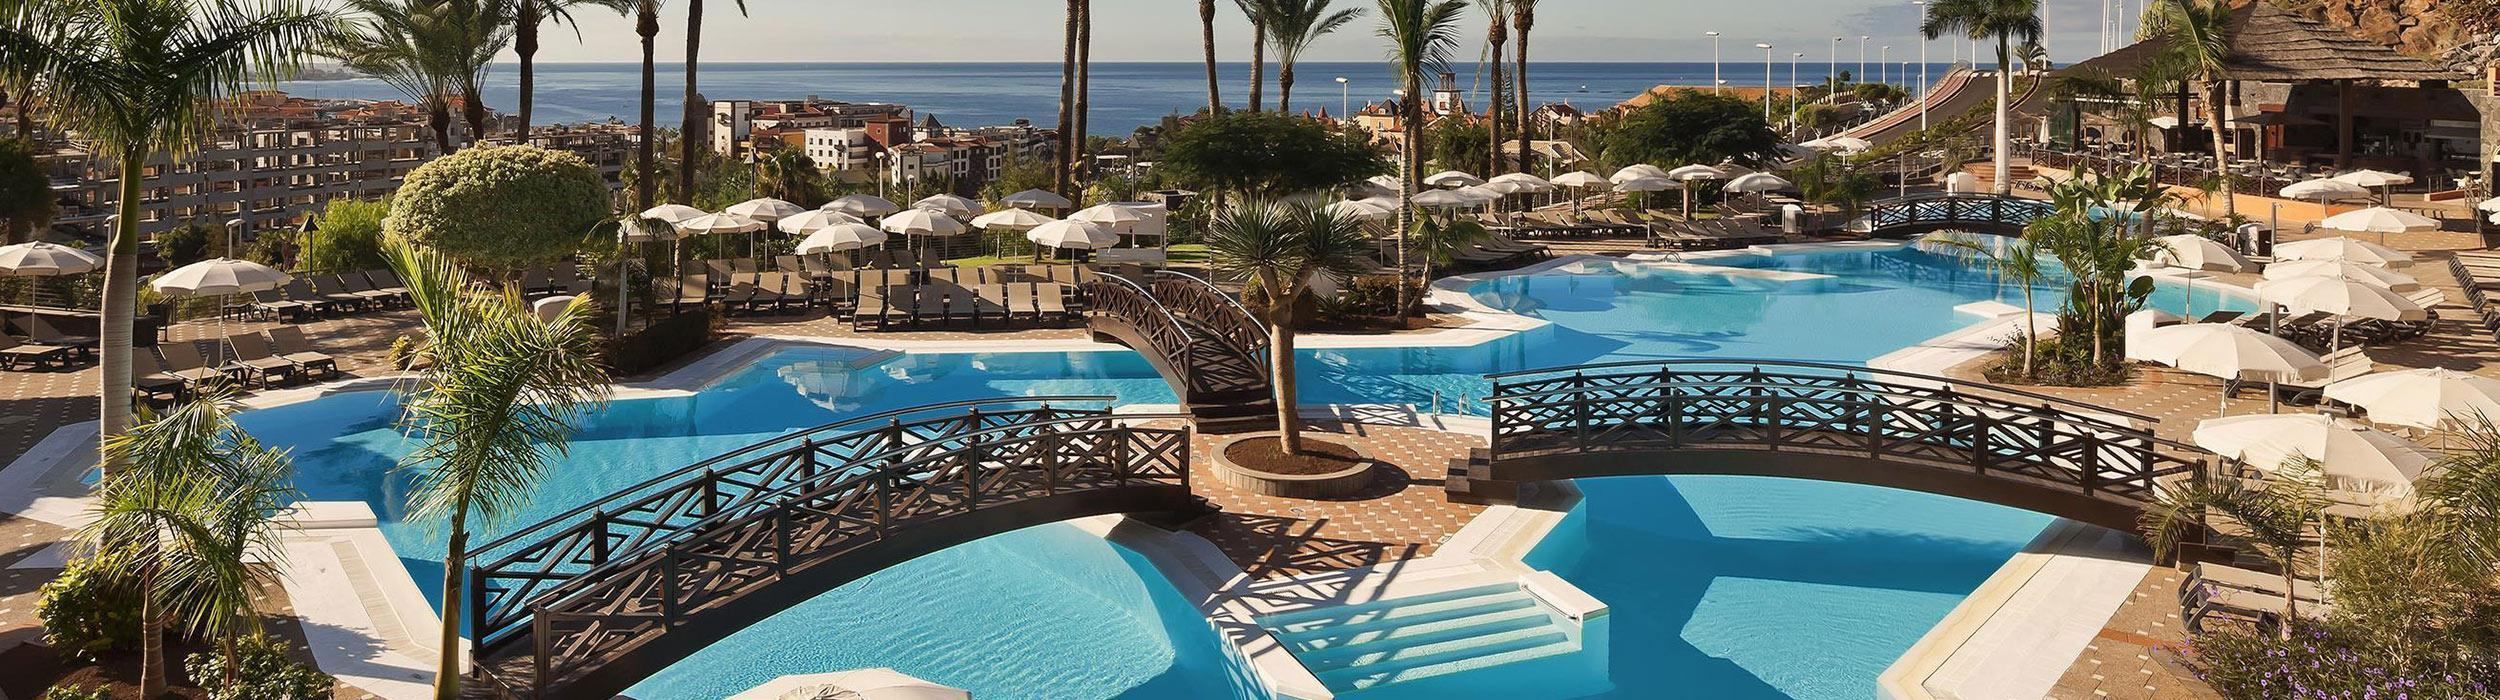 TENERIFE EARLY BOOKING OFFERS - UP TO 40% OFF!